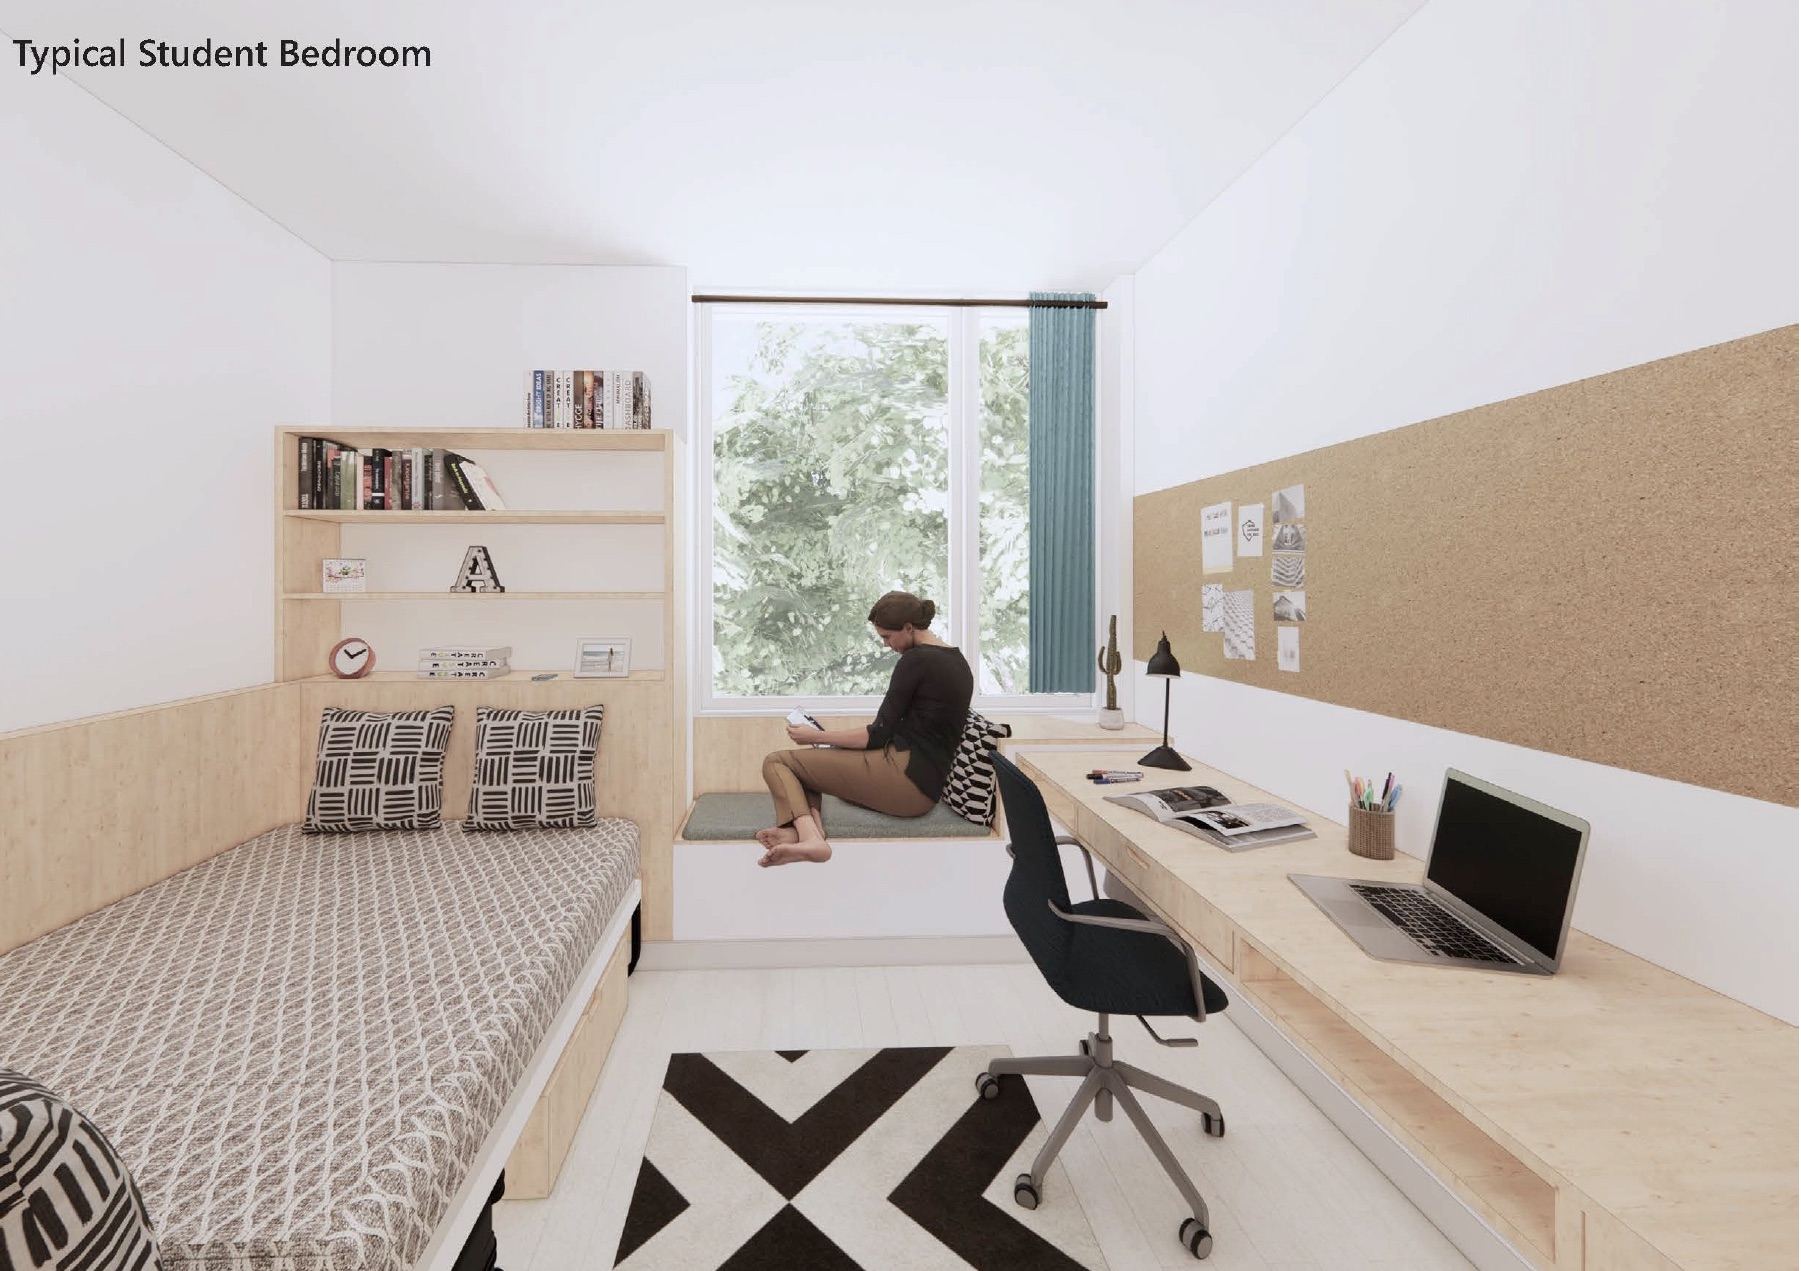 Lucy Cavendish College: Typical Student Bedroom